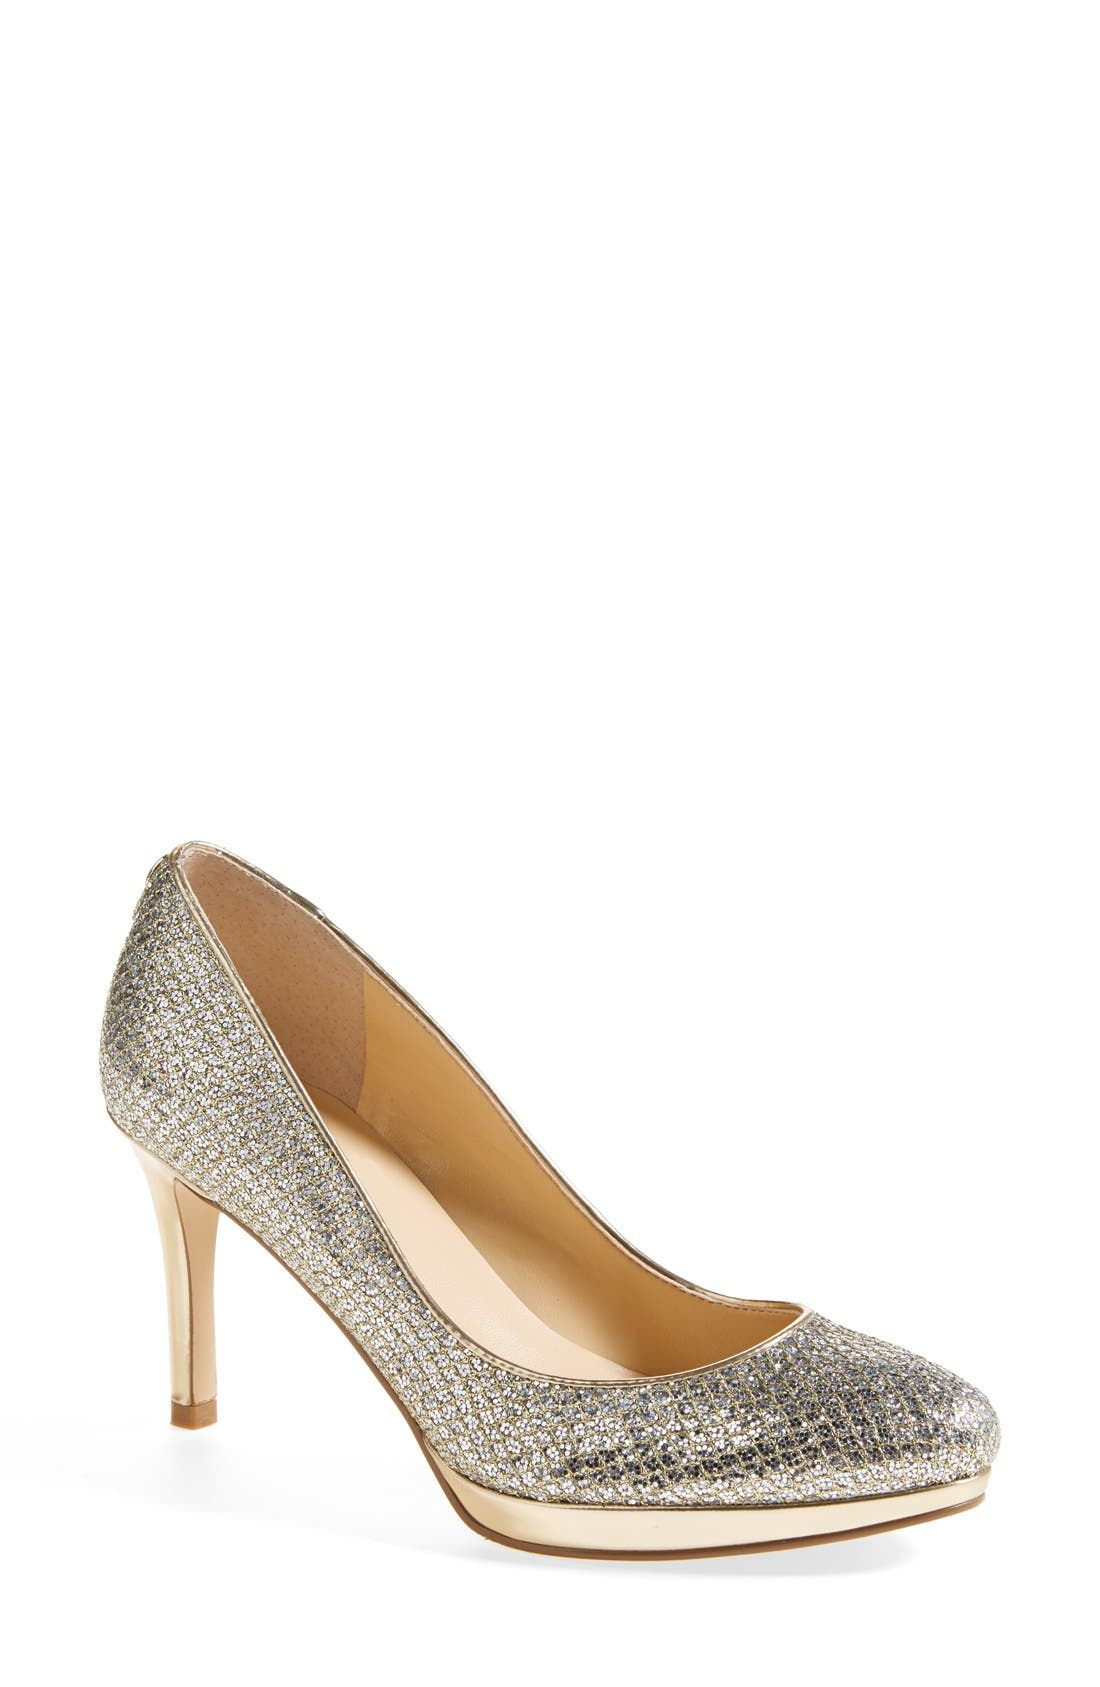 Alternate Image 1 Selected - Ivanka Trump 'Sophia' Pump (Nordstrom Exclusive)